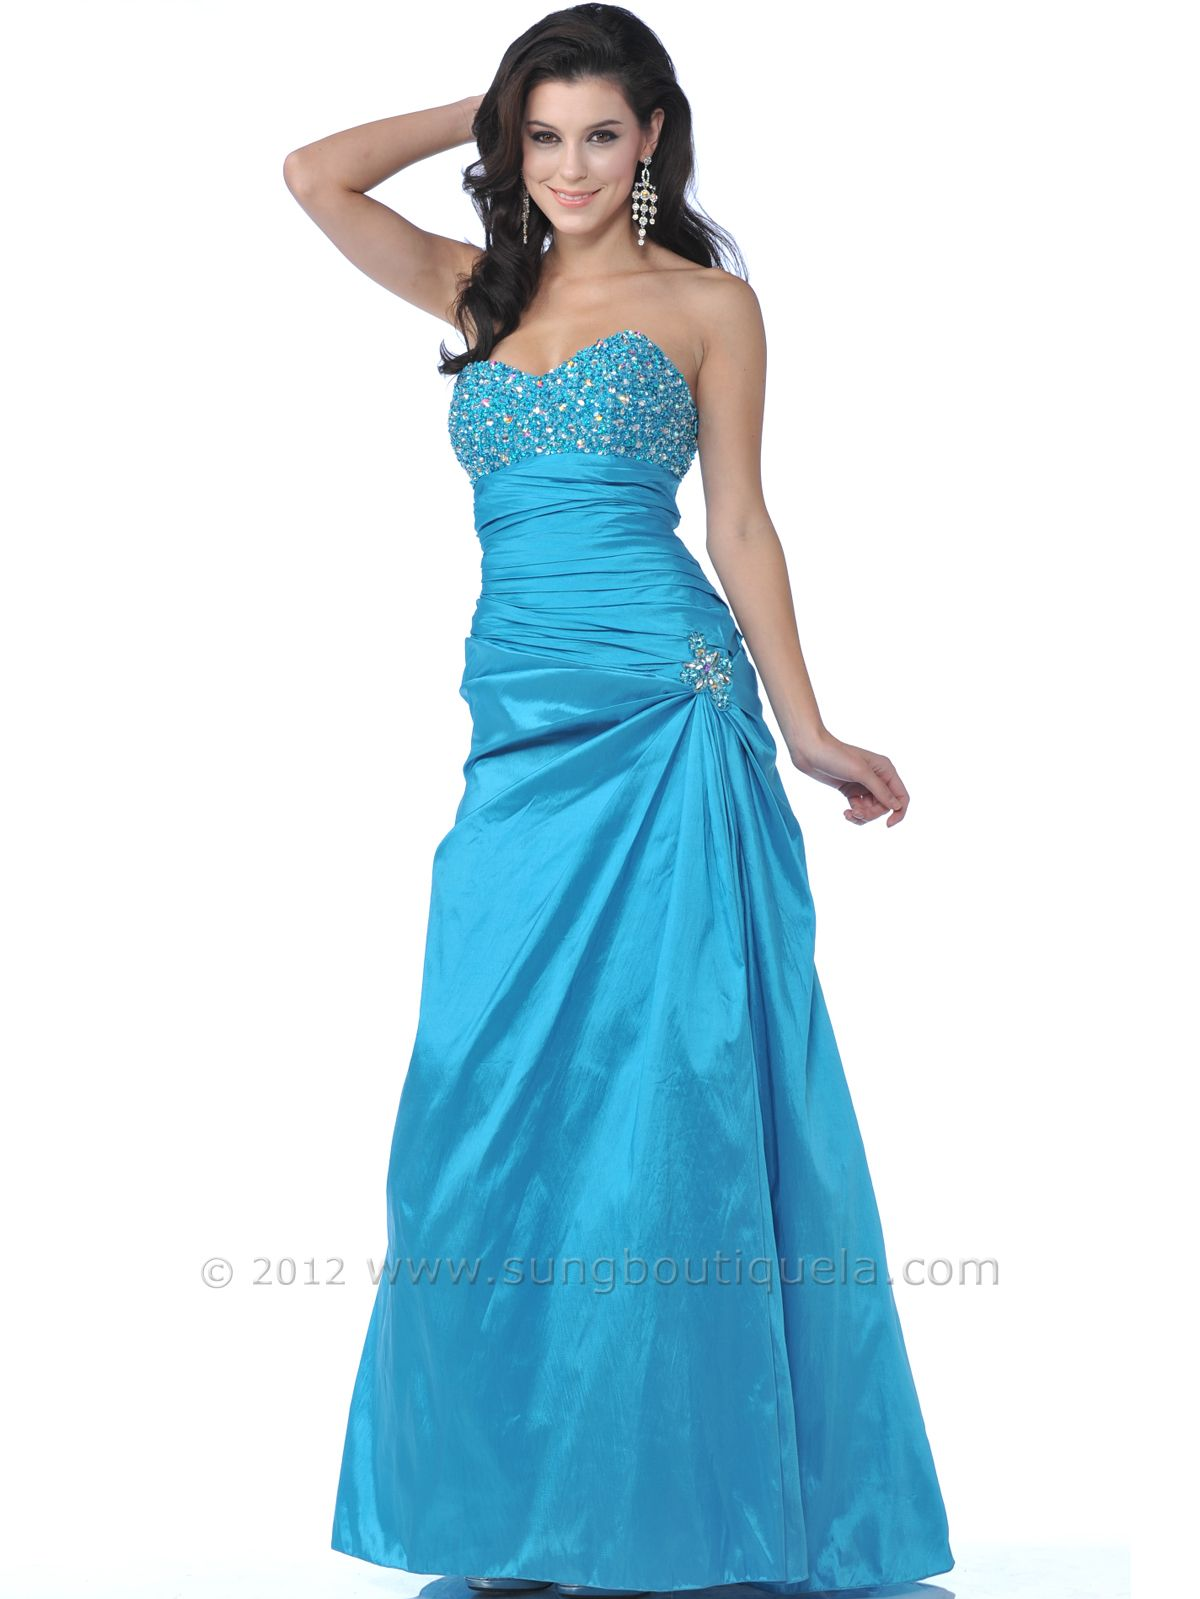 Turquoise prom dresses jeweled prom dress sweetheart neckline from